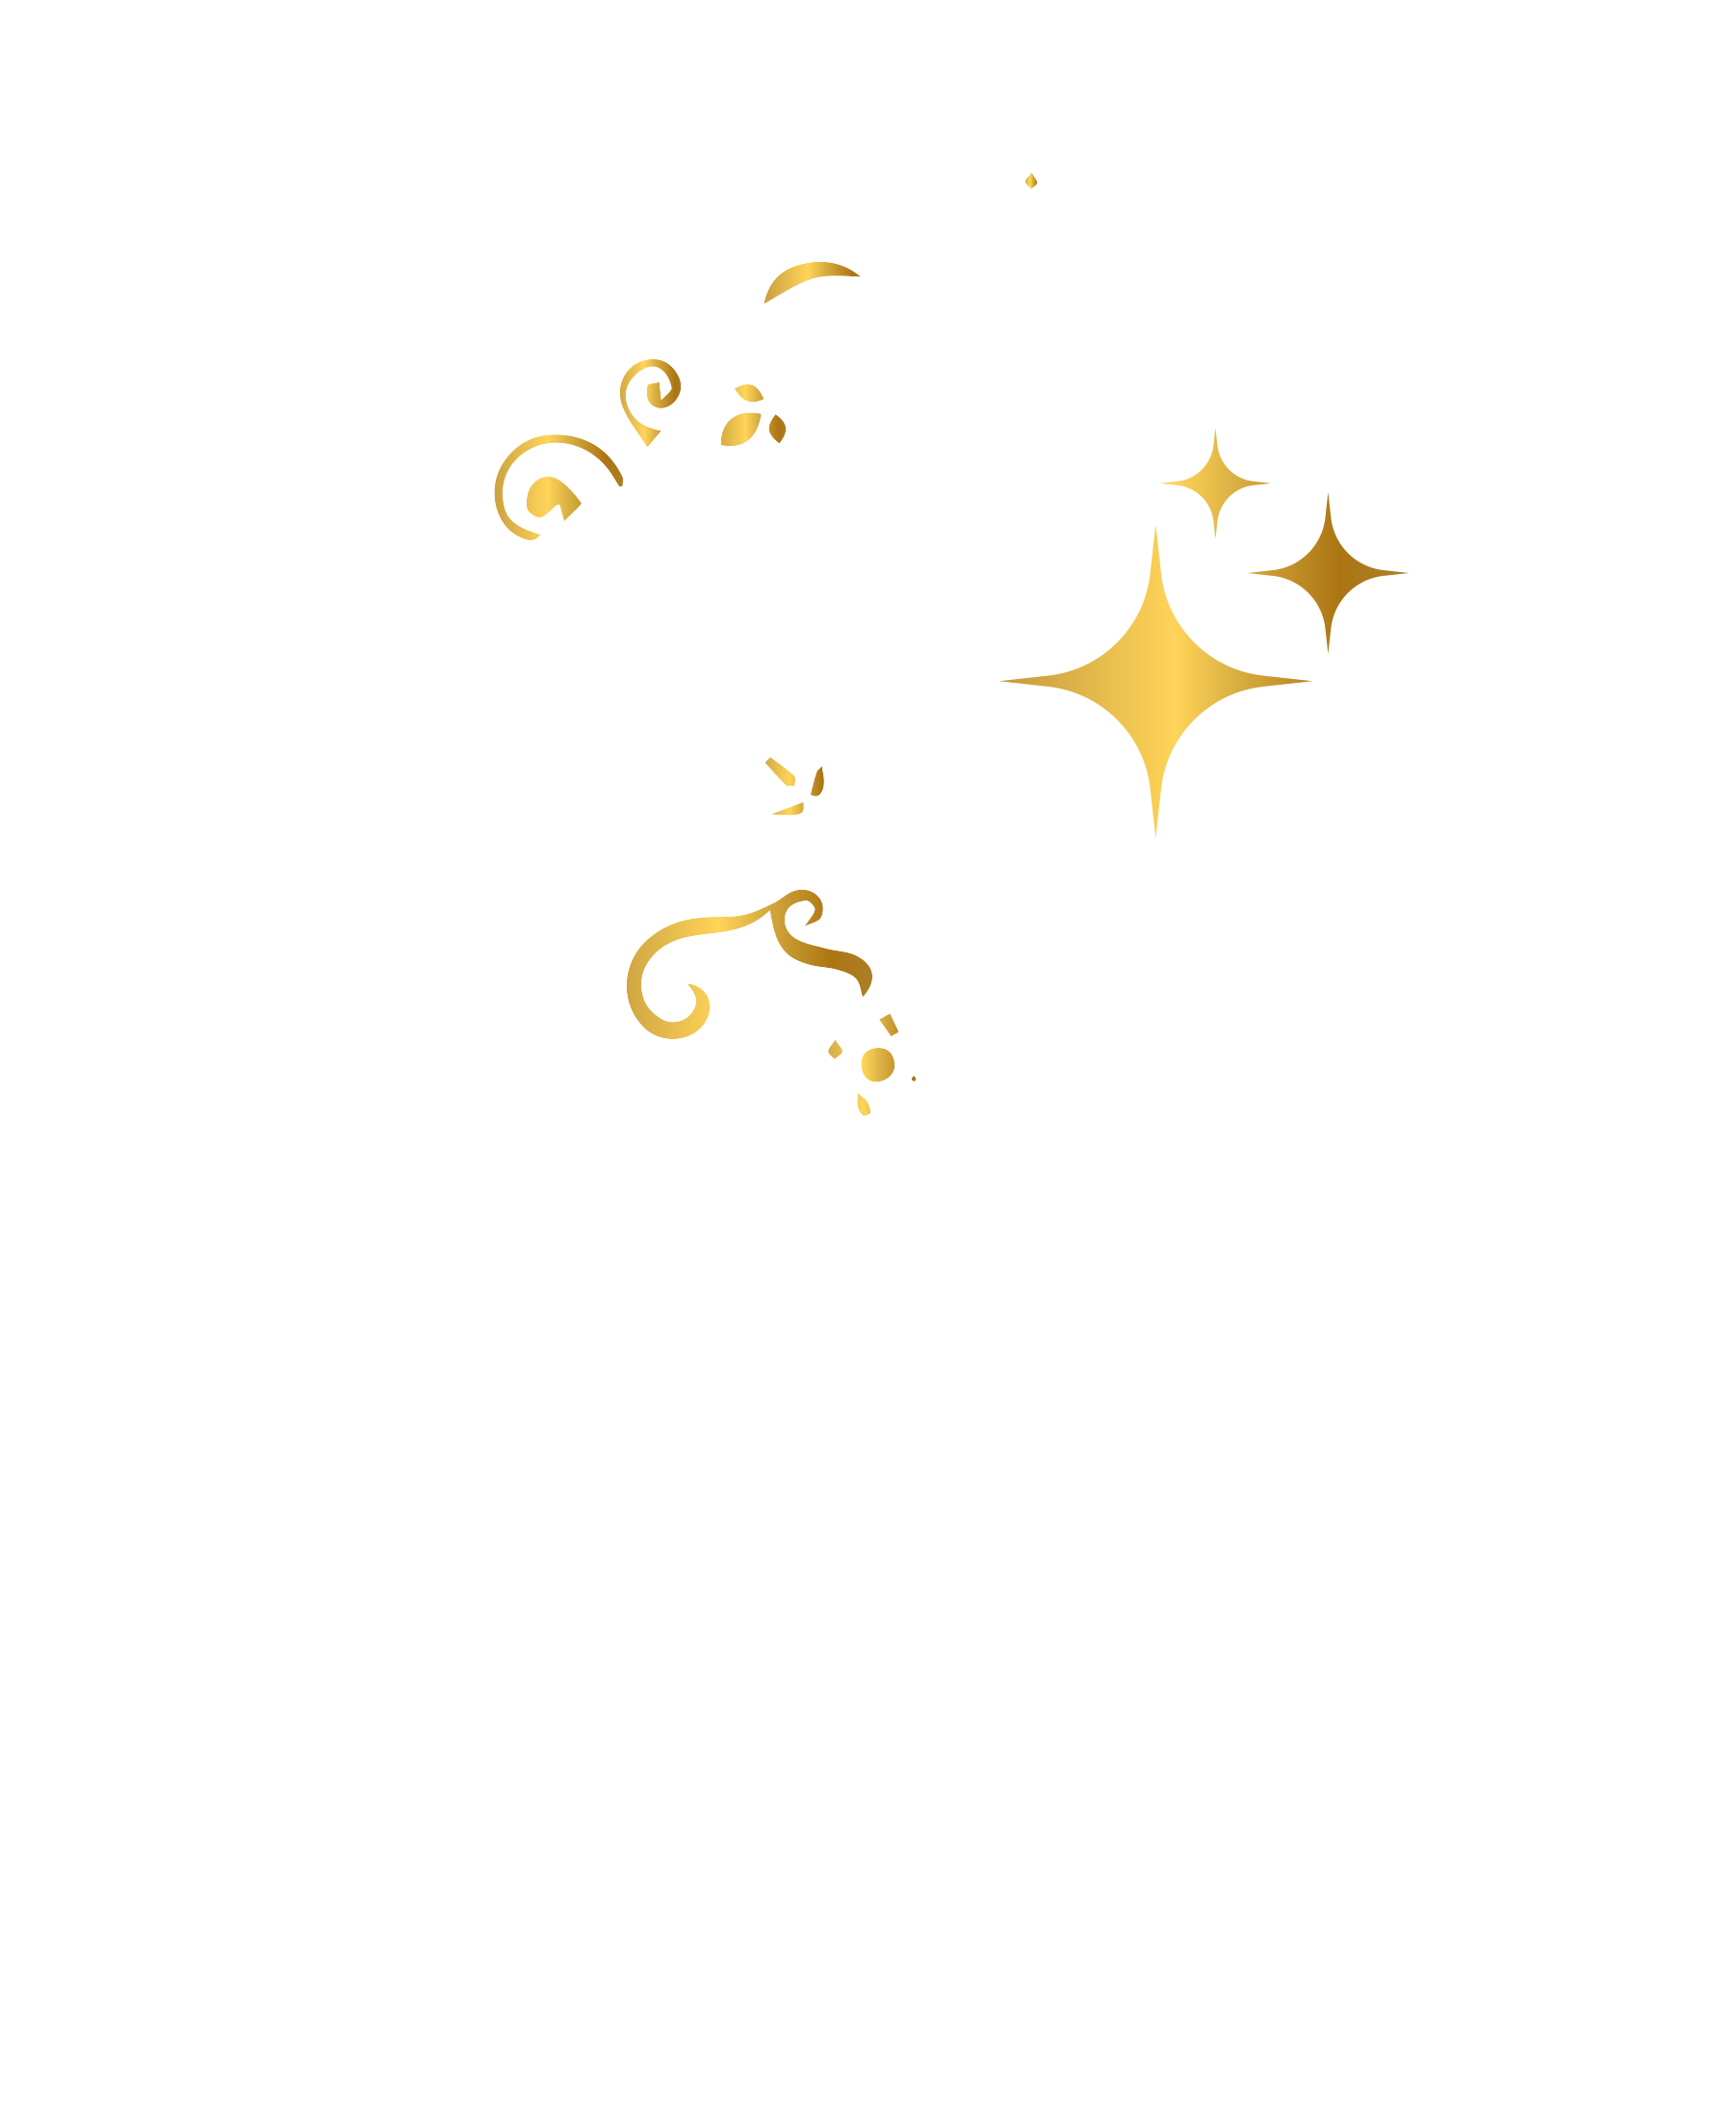 Angies Hair and Beauty